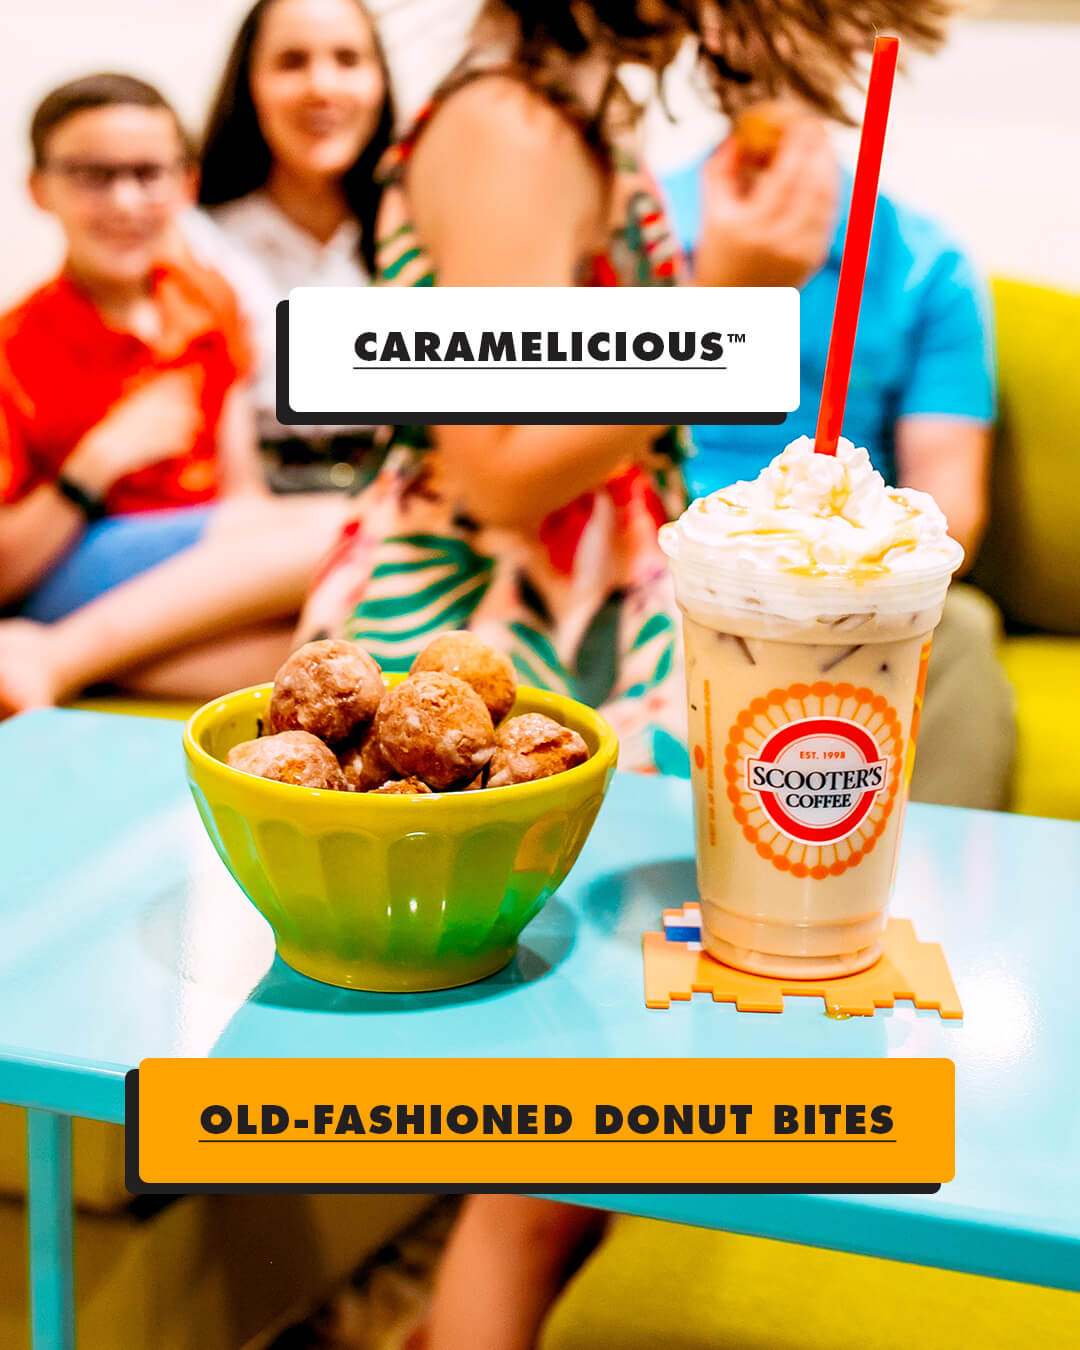 Caramelicious and Old Fashioned Donut Bites